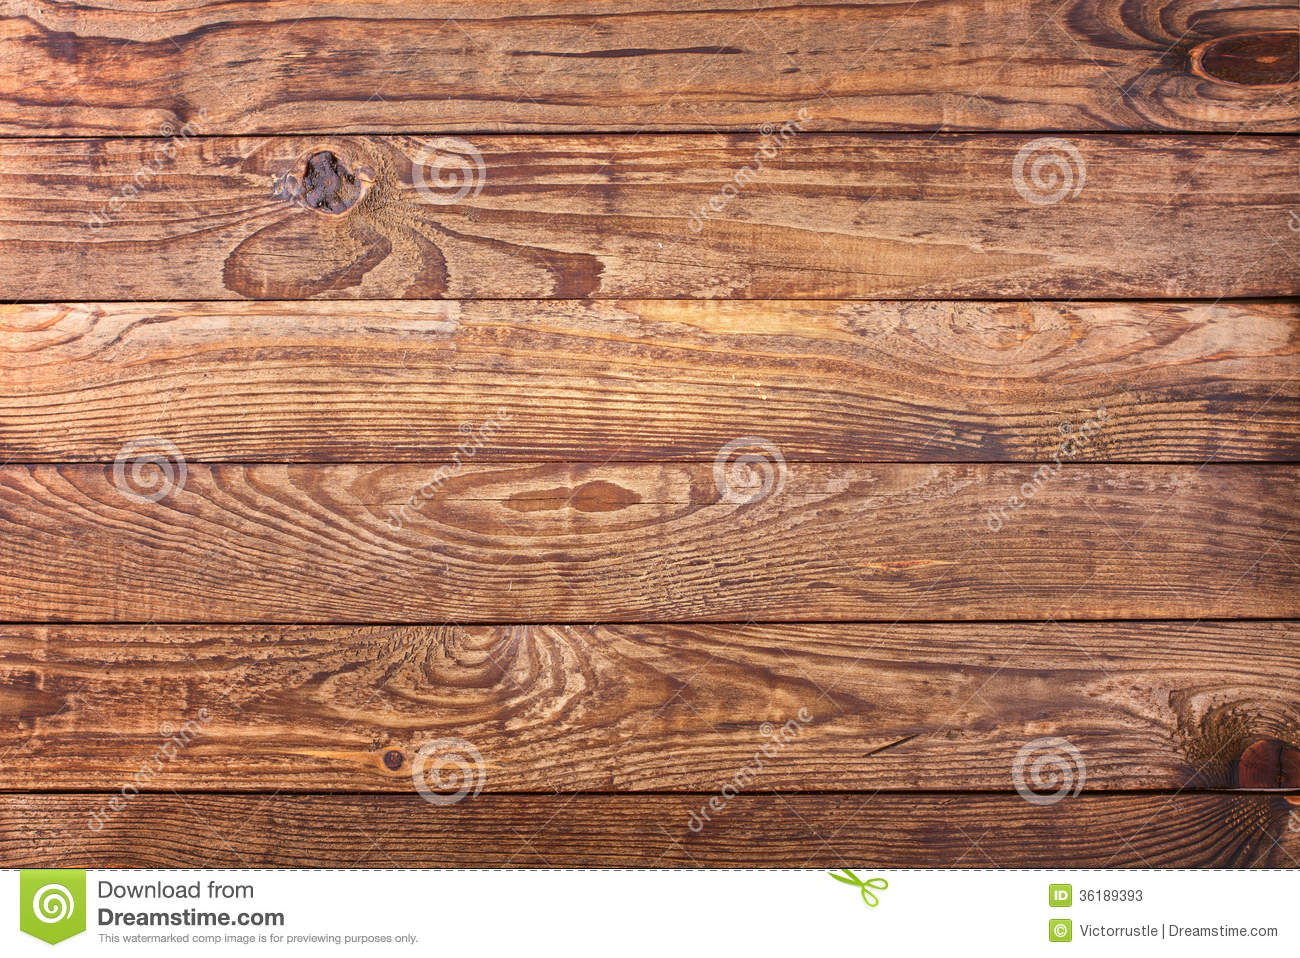 old wood texture floor surface stock image image of tiles parquet 36189393. Black Bedroom Furniture Sets. Home Design Ideas